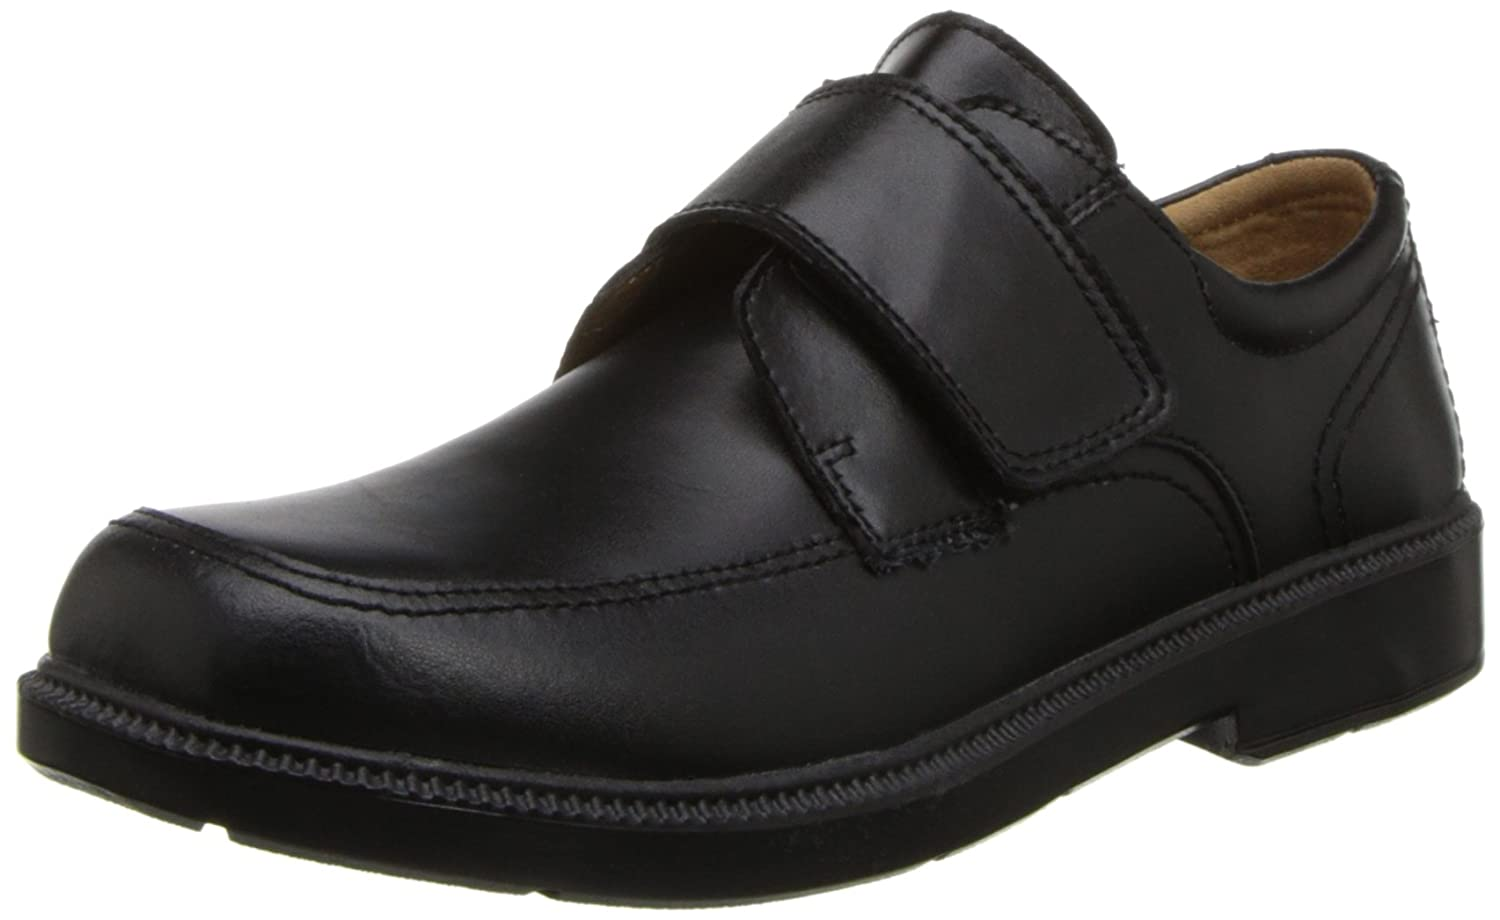 Florsheim Kids' Berwyn JR Uniform Oxford Shoe (Toddler/Little Kid/Big Kid) Florsheim Kids Footwear Berwyn JR S - K